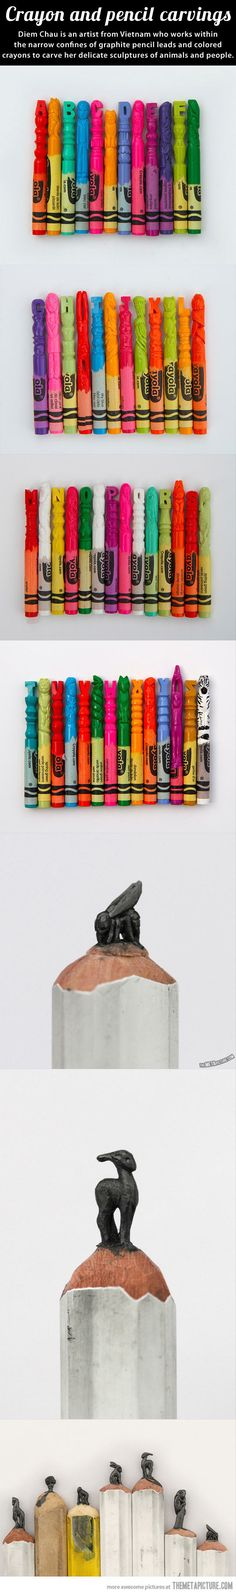 Mind-blowing crayon and pencil carvings…